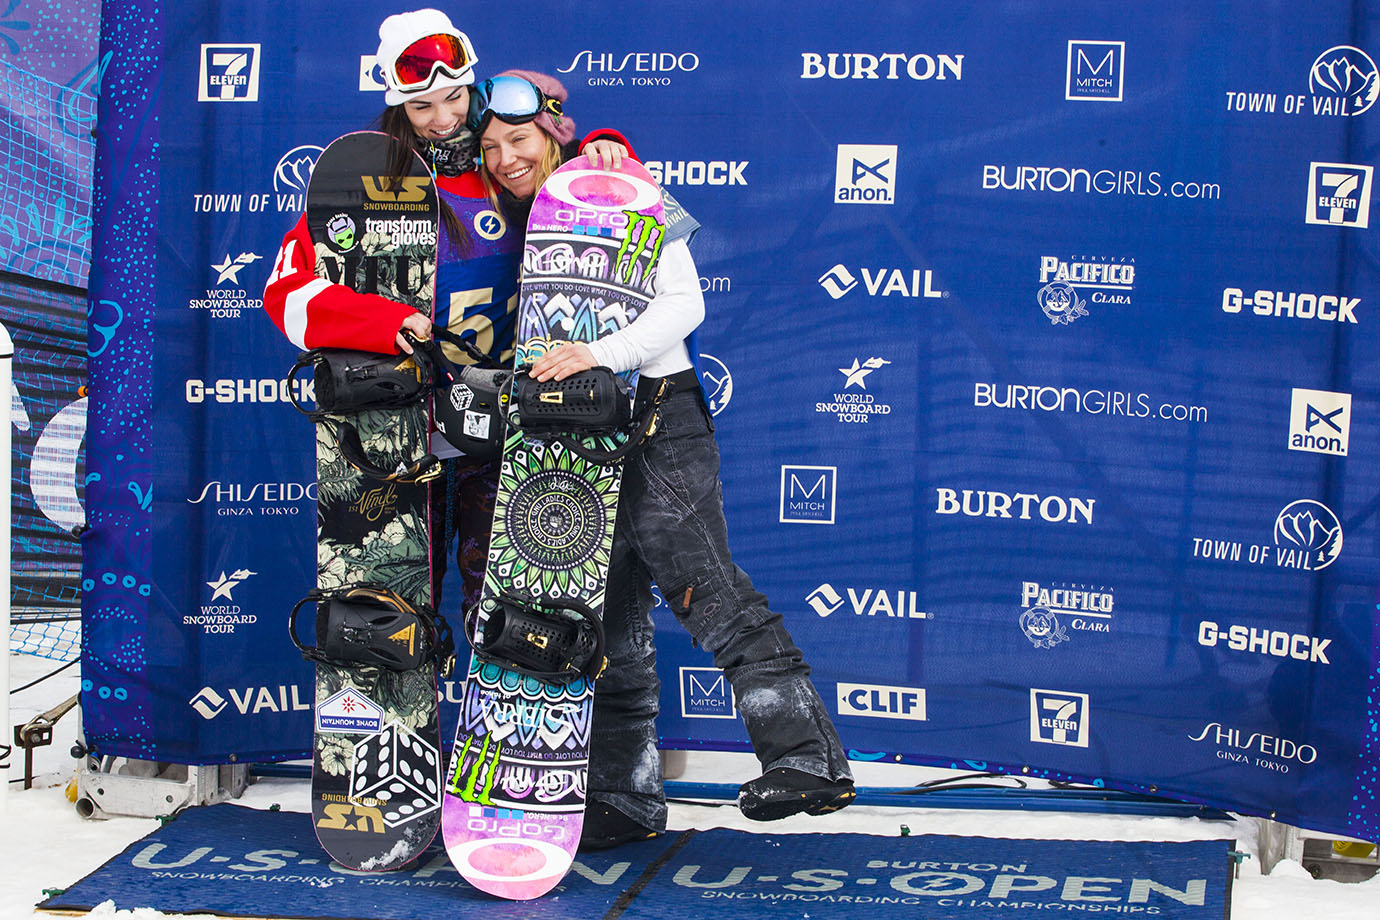 Jamie Anderson and Karly Shorr embrace just before the winners are announced. X Games Oslo women's snowboard Big Air winner Cheryl Maas rounded out the top three.